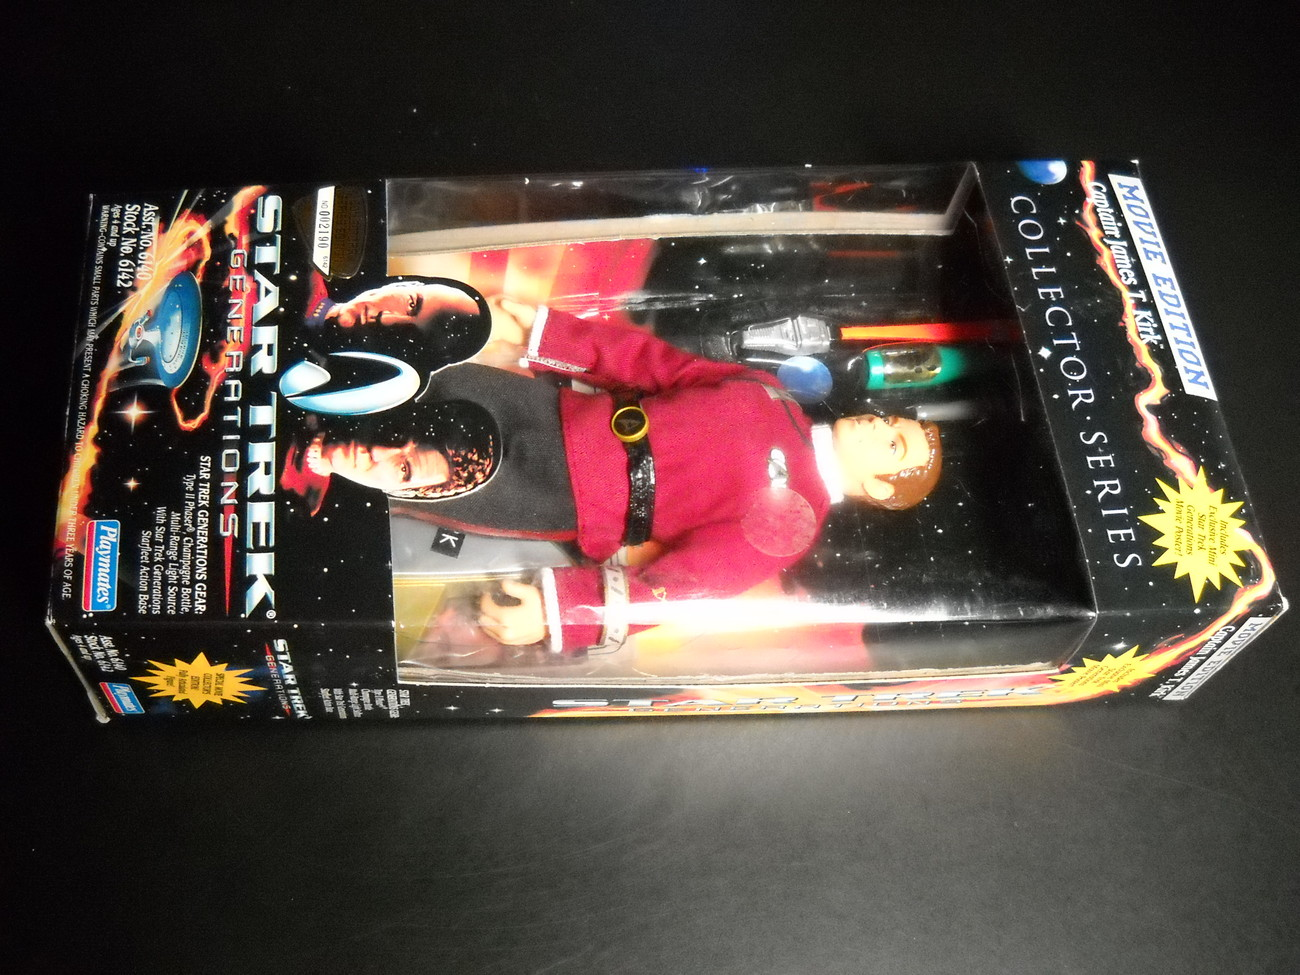 Toy star trek playmates star trek generations movie edition captain james t kirk 1994 9 inch boxed sealed 01